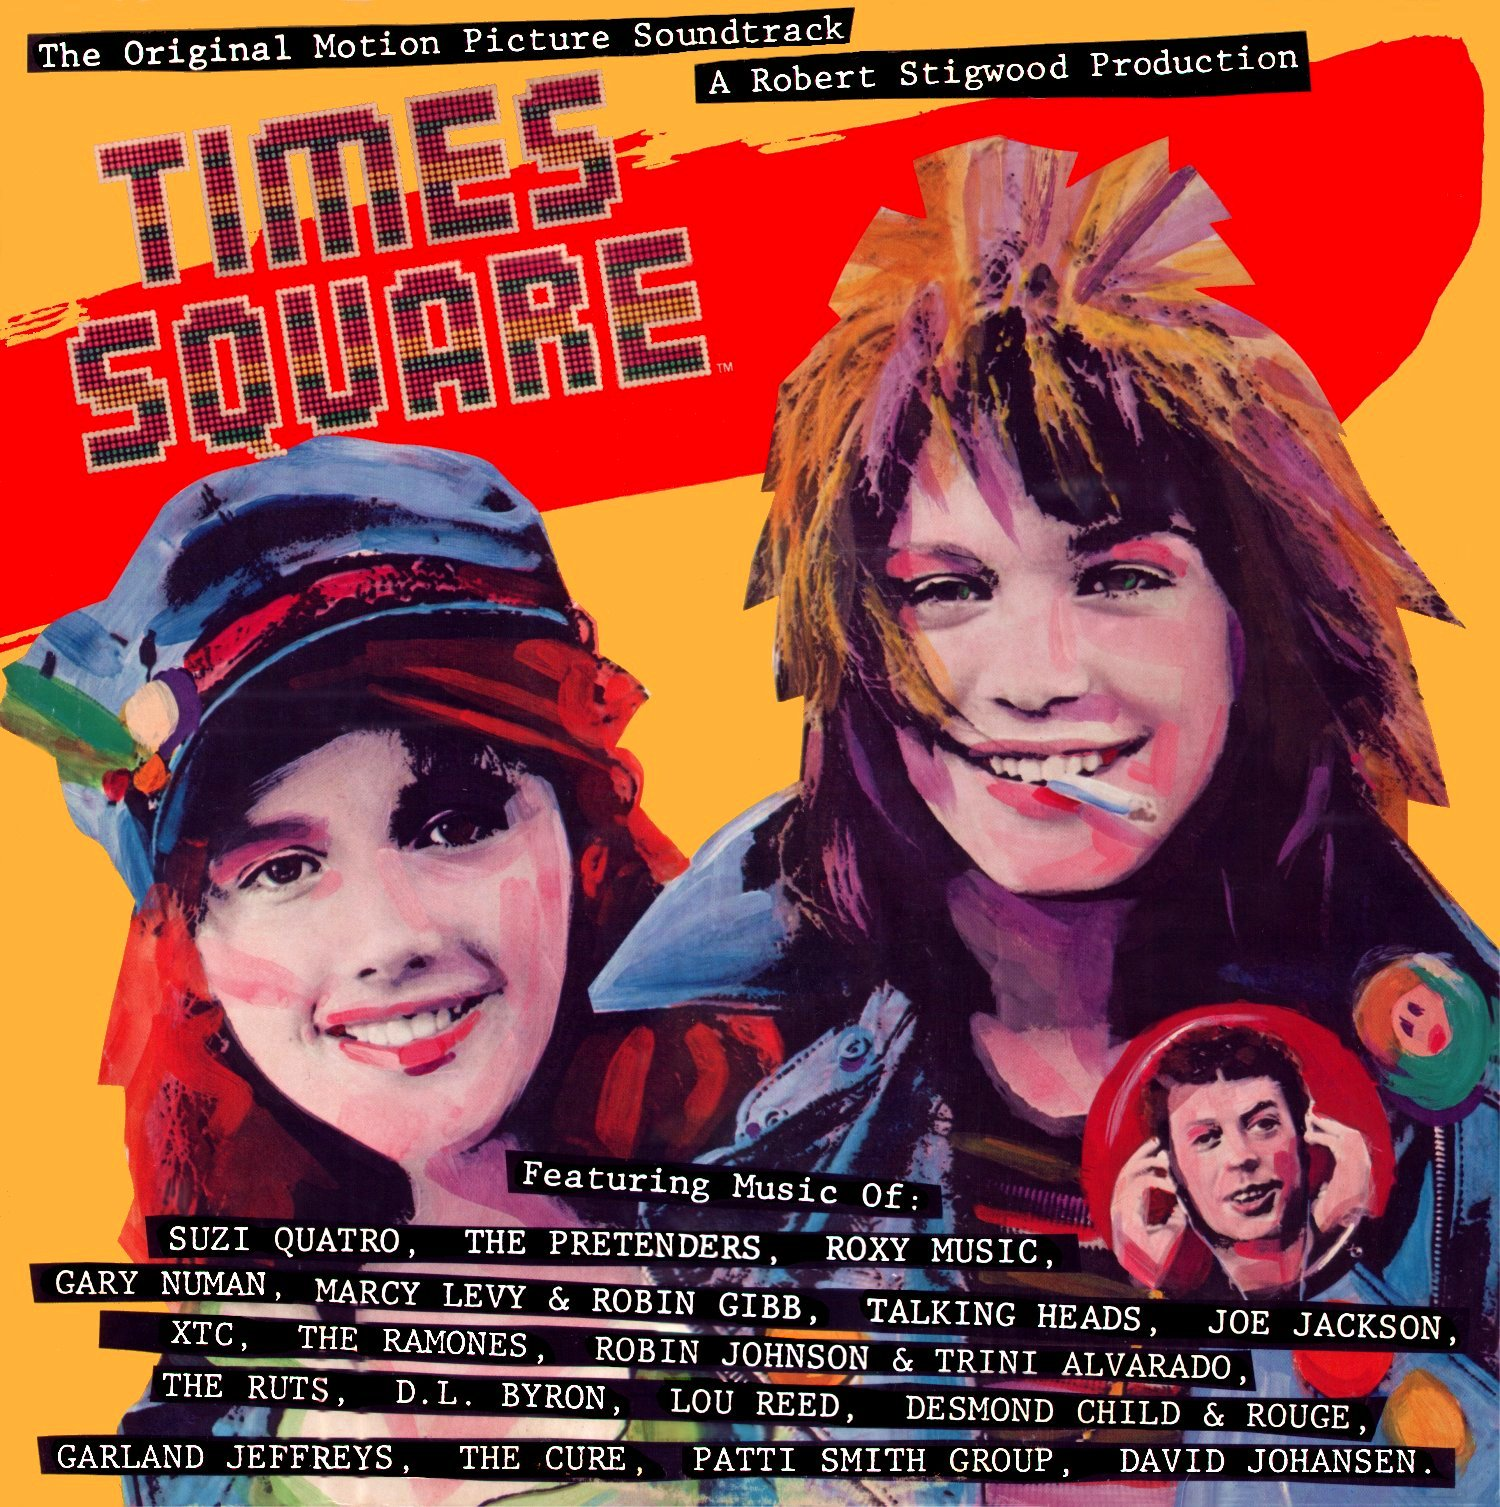 Times Square Soundtrack Vinyl Lover